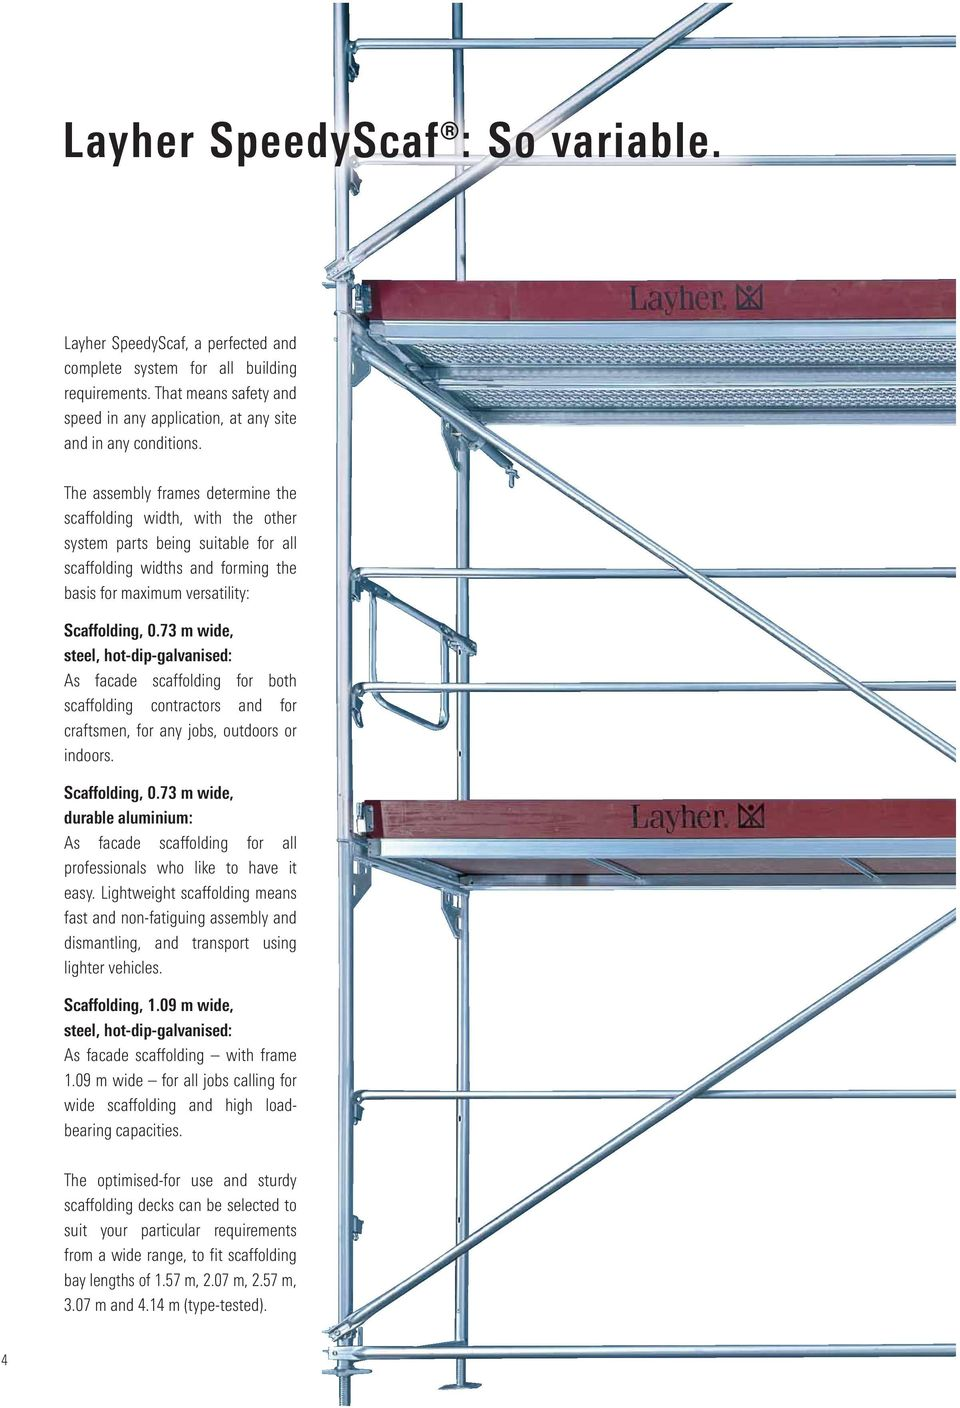 73 m wide, steel, hot-dip-galvanised: As facade scaffolding for both scaffolding contractors and for craftsmen, for any jobs, outdoors or indoors. Scaffolding, 0.